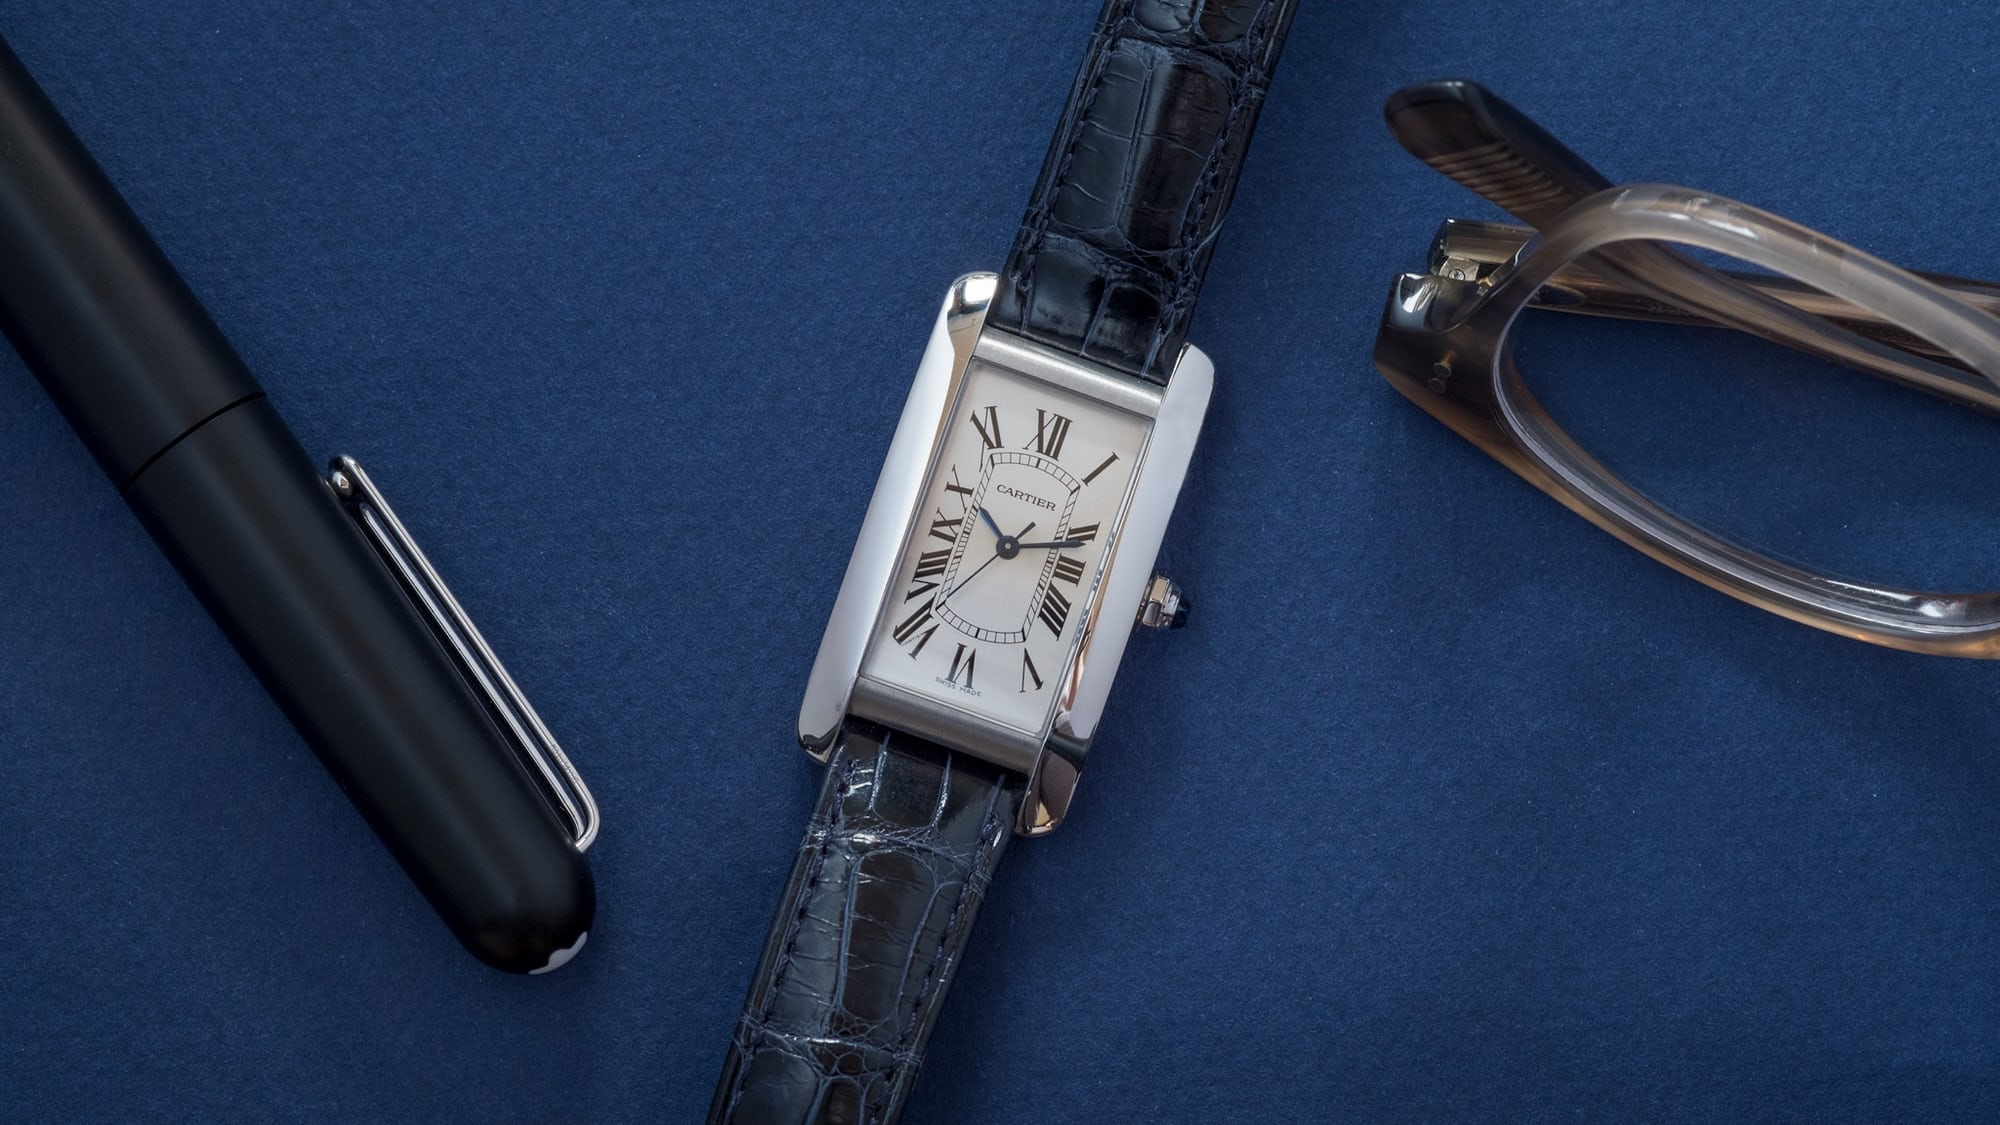 Img 2731.jpg?ixlib=rails 1.1 A Week On The Wrist: The Cartier Tank Américaine In Steel A Week On The Wrist: The Cartier Tank Américaine In Steel IMG 2731